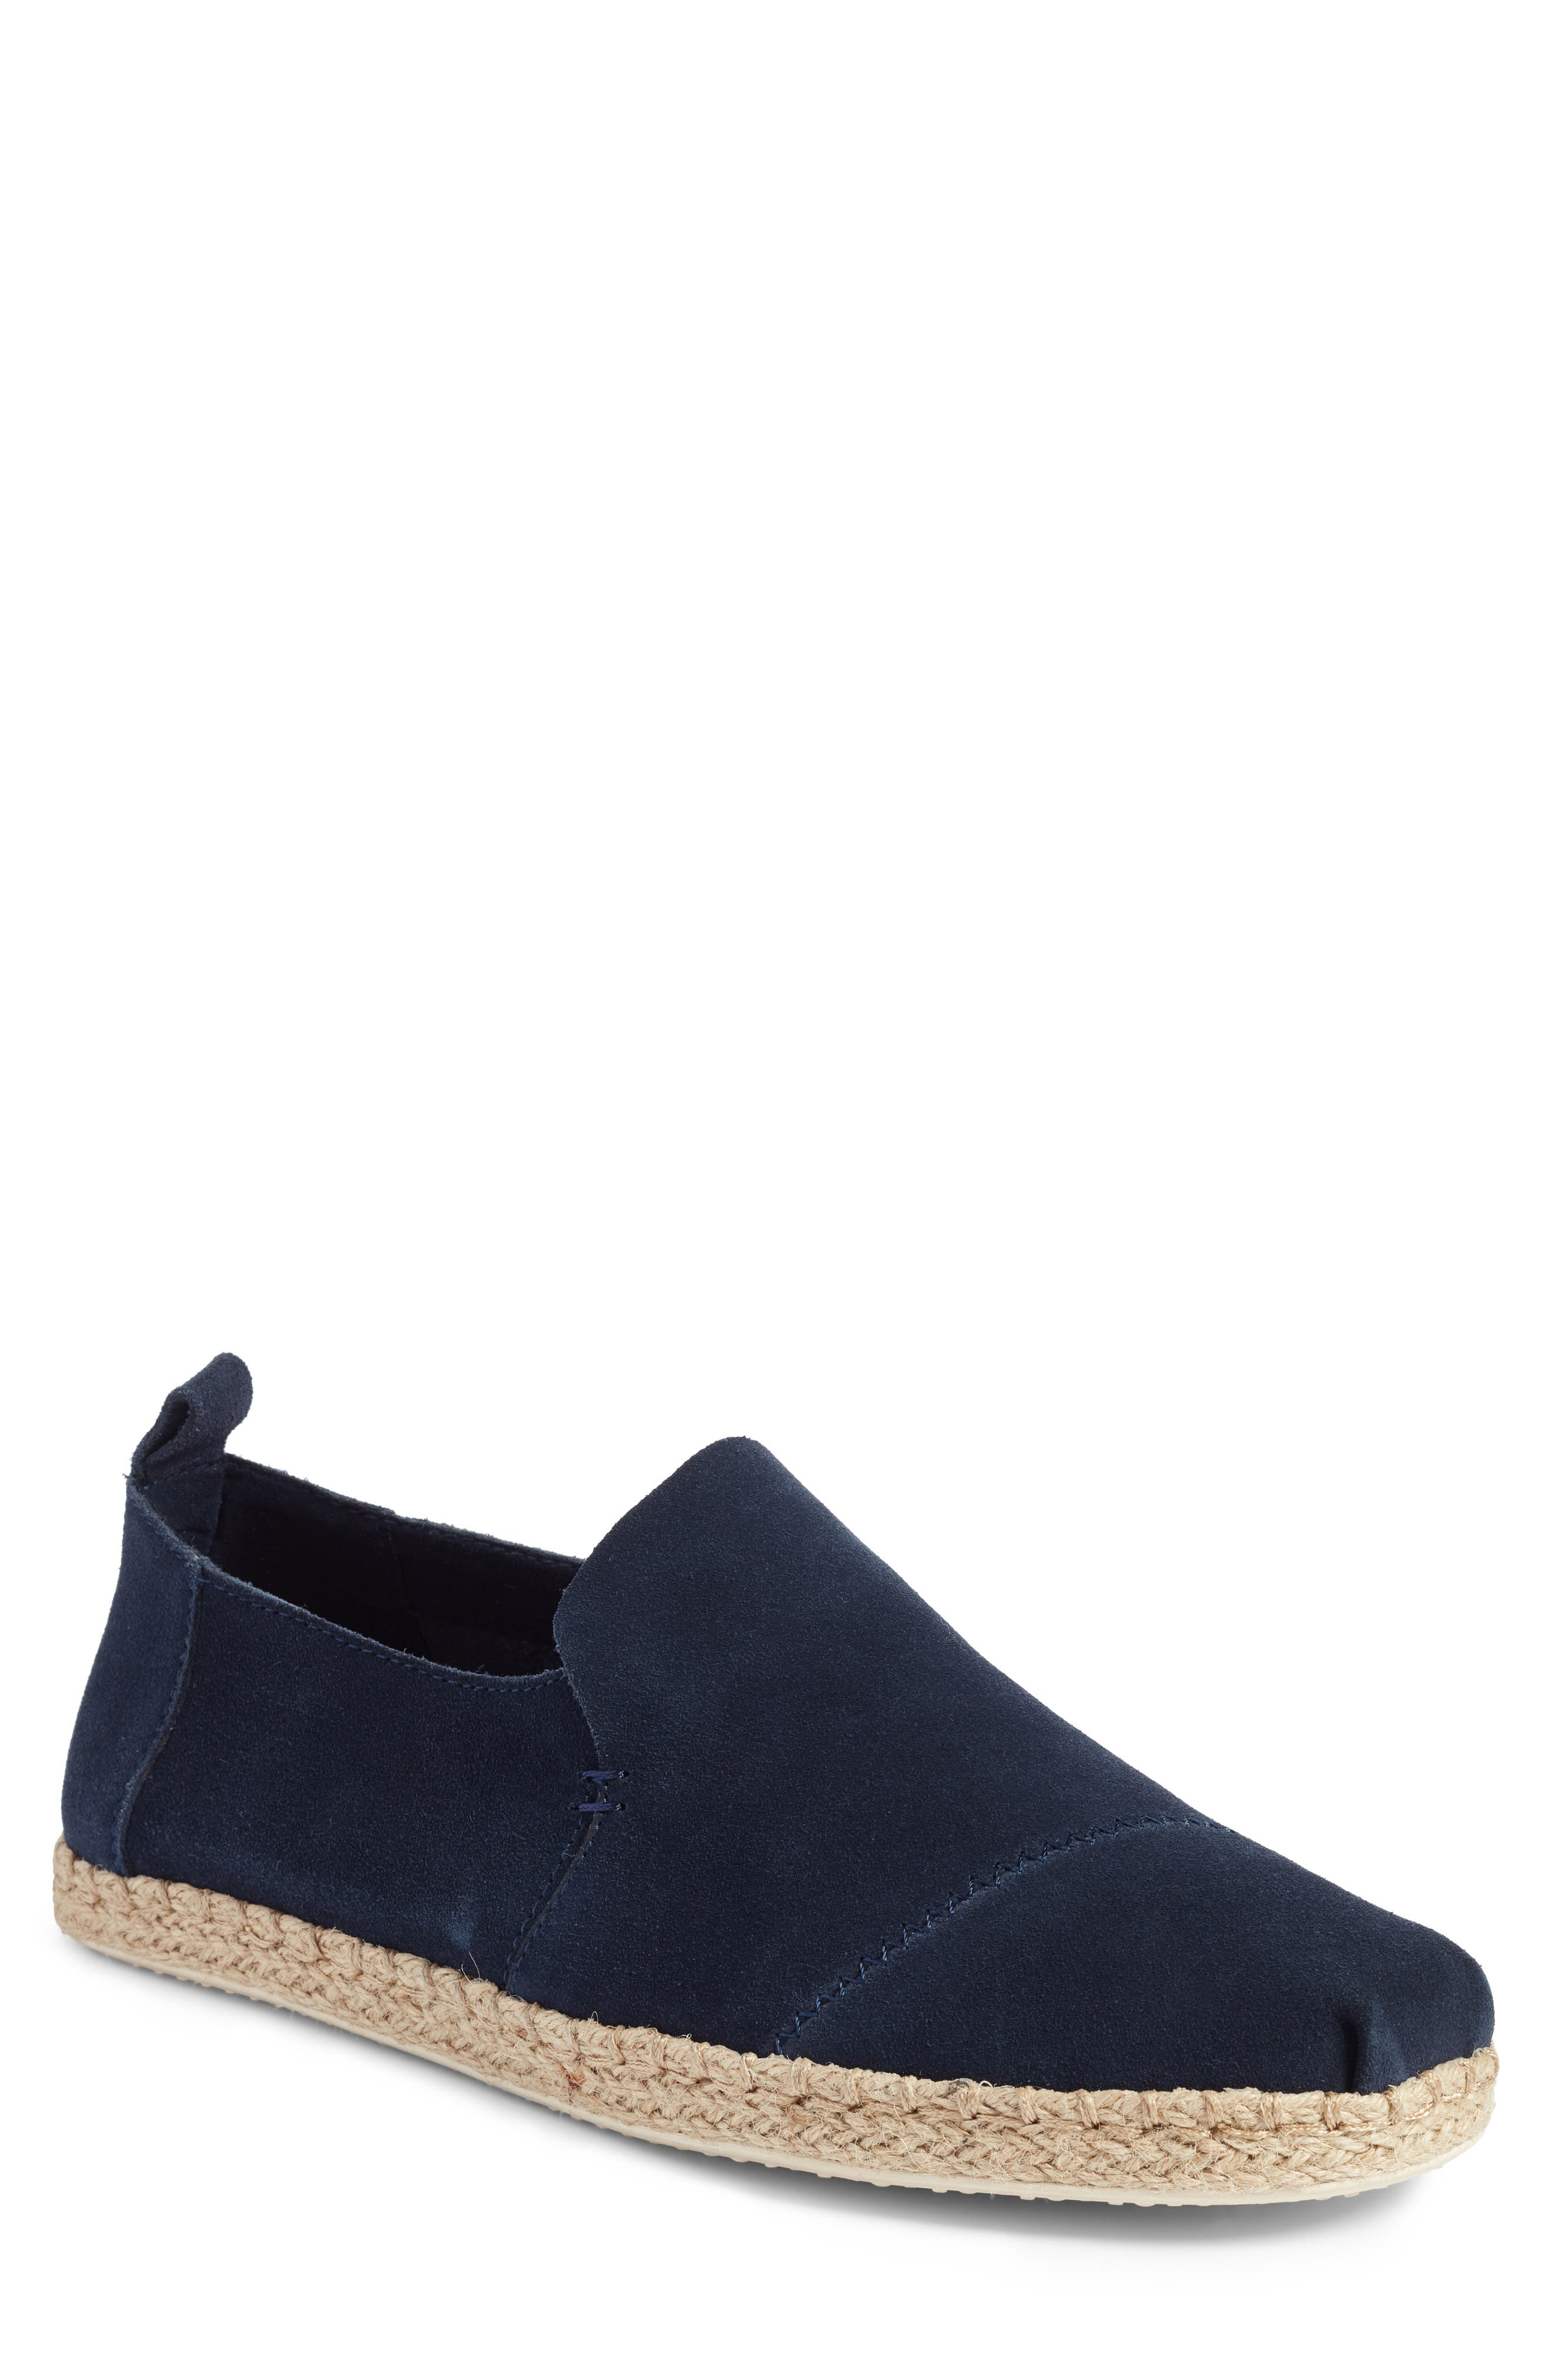 Deconstructed Alpargata,                         Main,                         color, Navy Suede